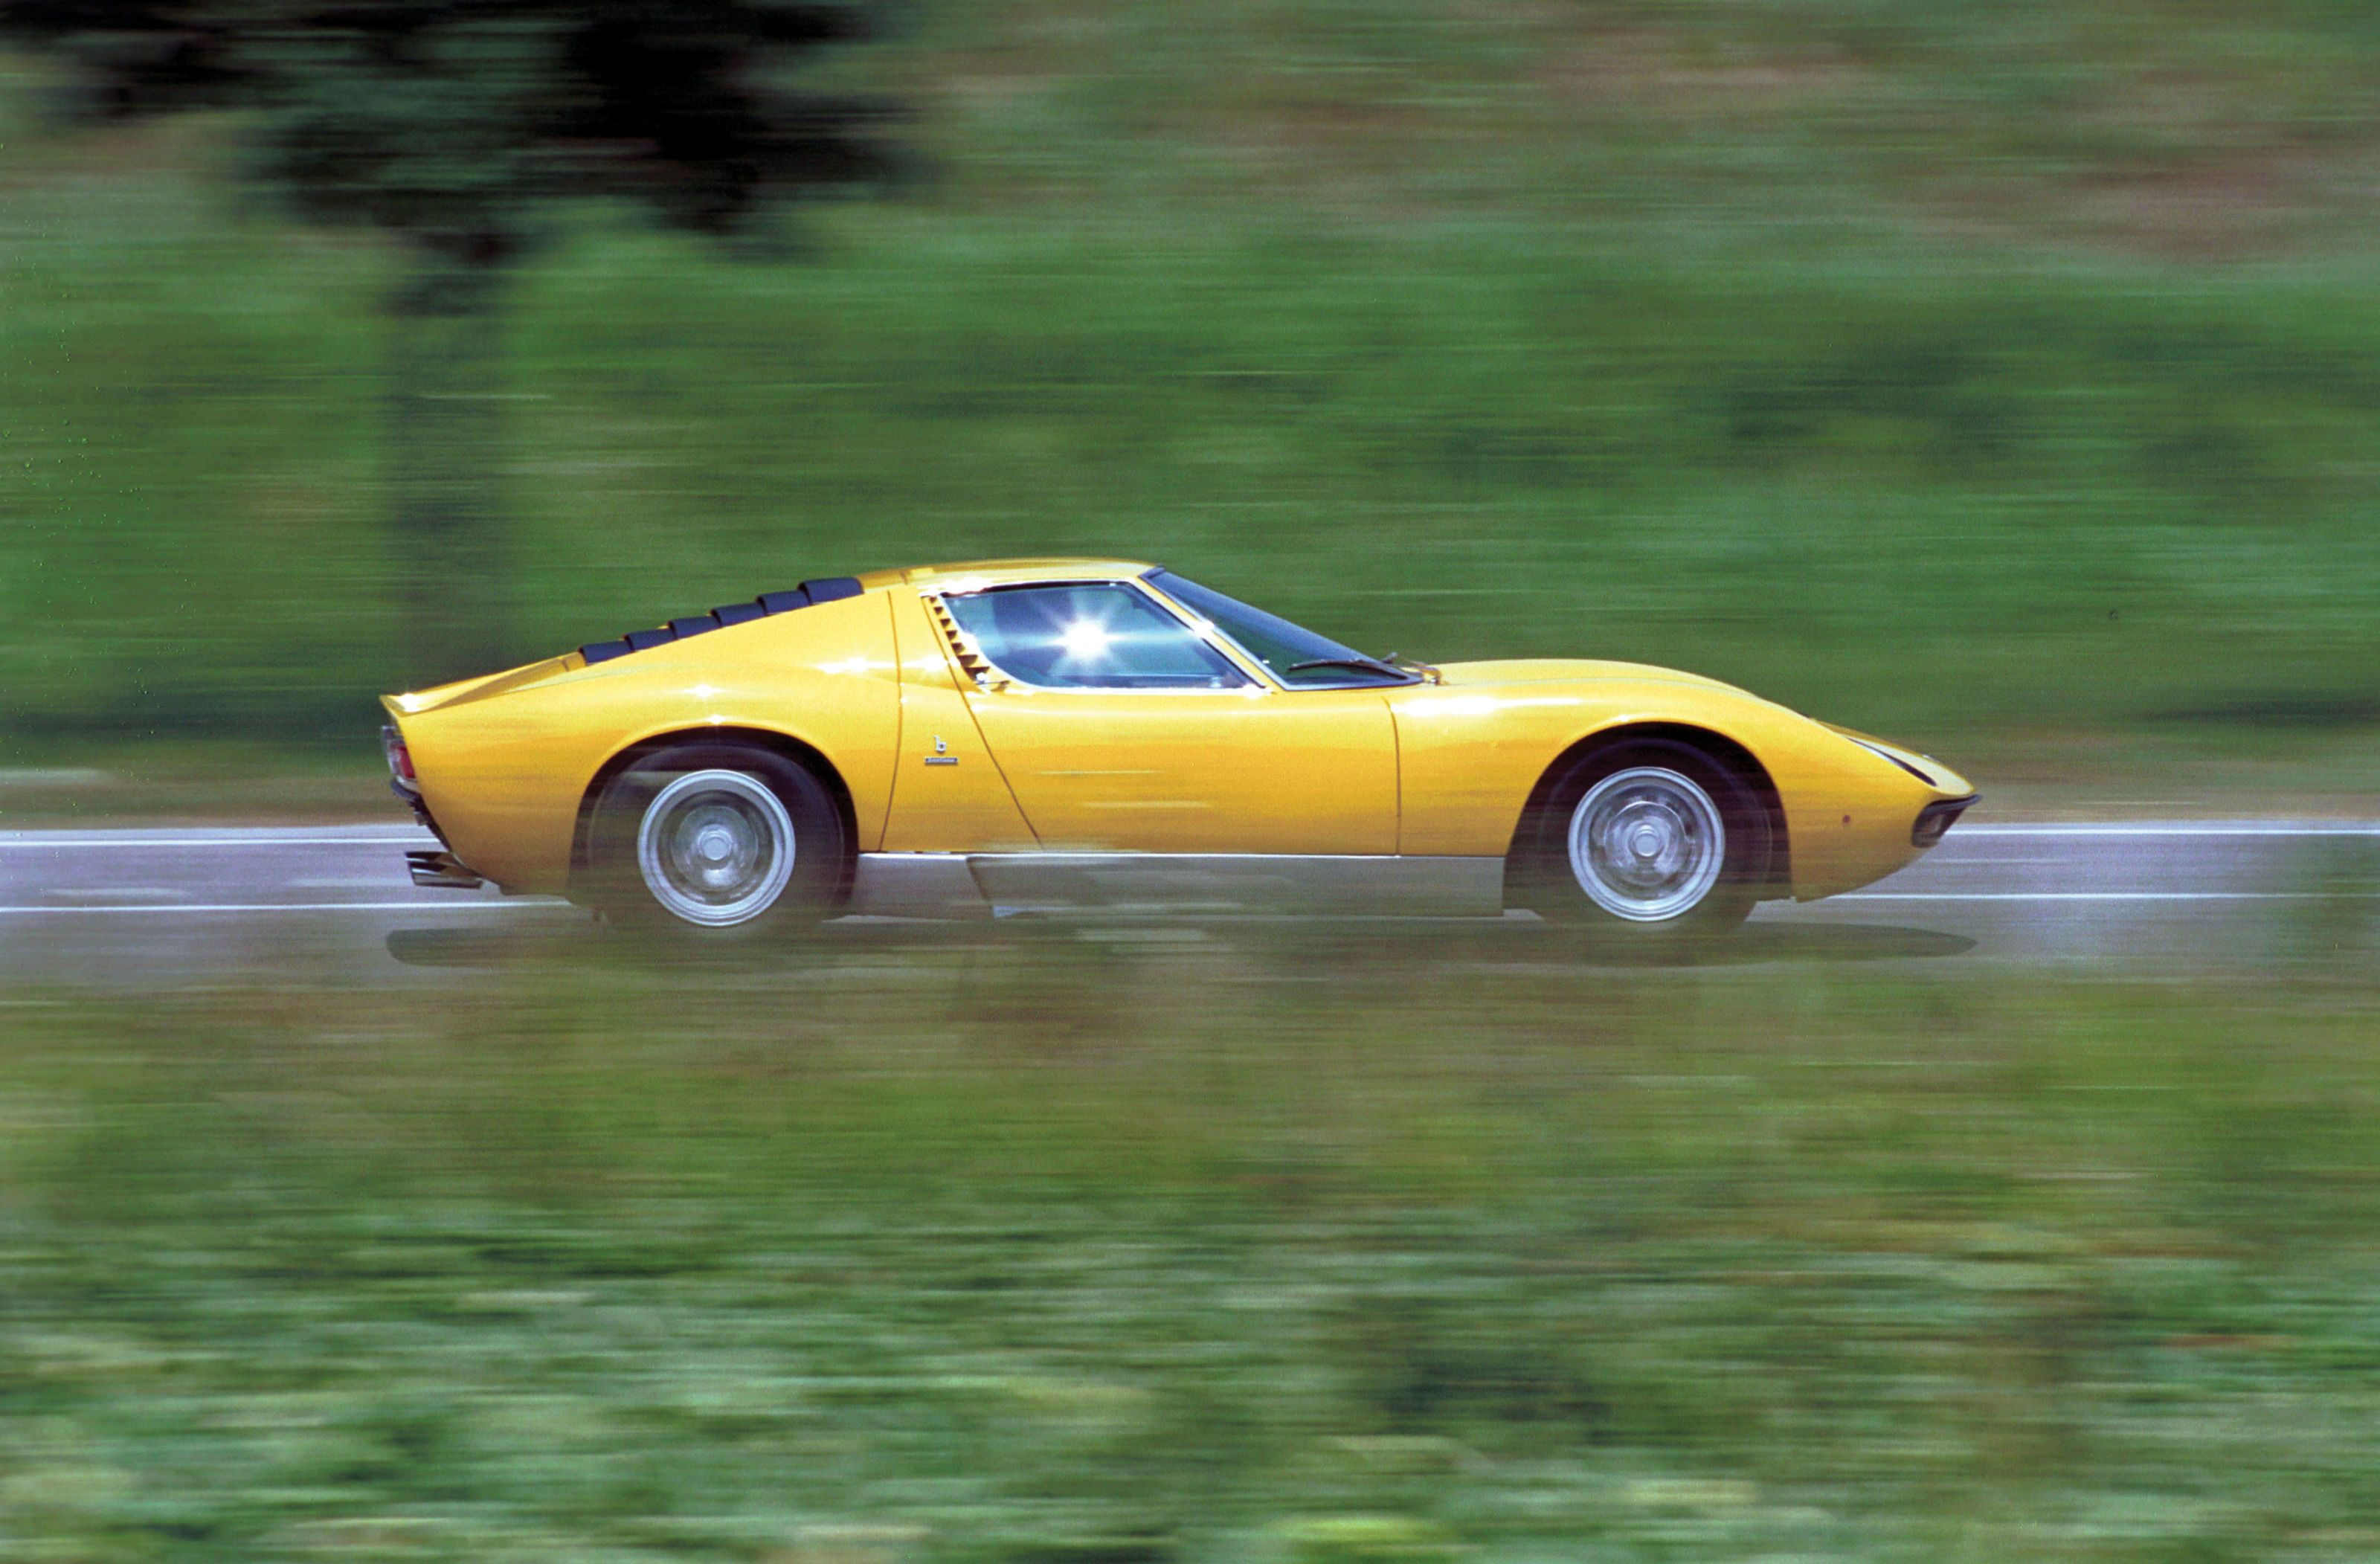 As For Ultimate Performance, The Miura We Tested Was Not Fully Up To Our  Expectations. At The High Speed Test Site (where The Elevation Is Over 3000  Ft, ...